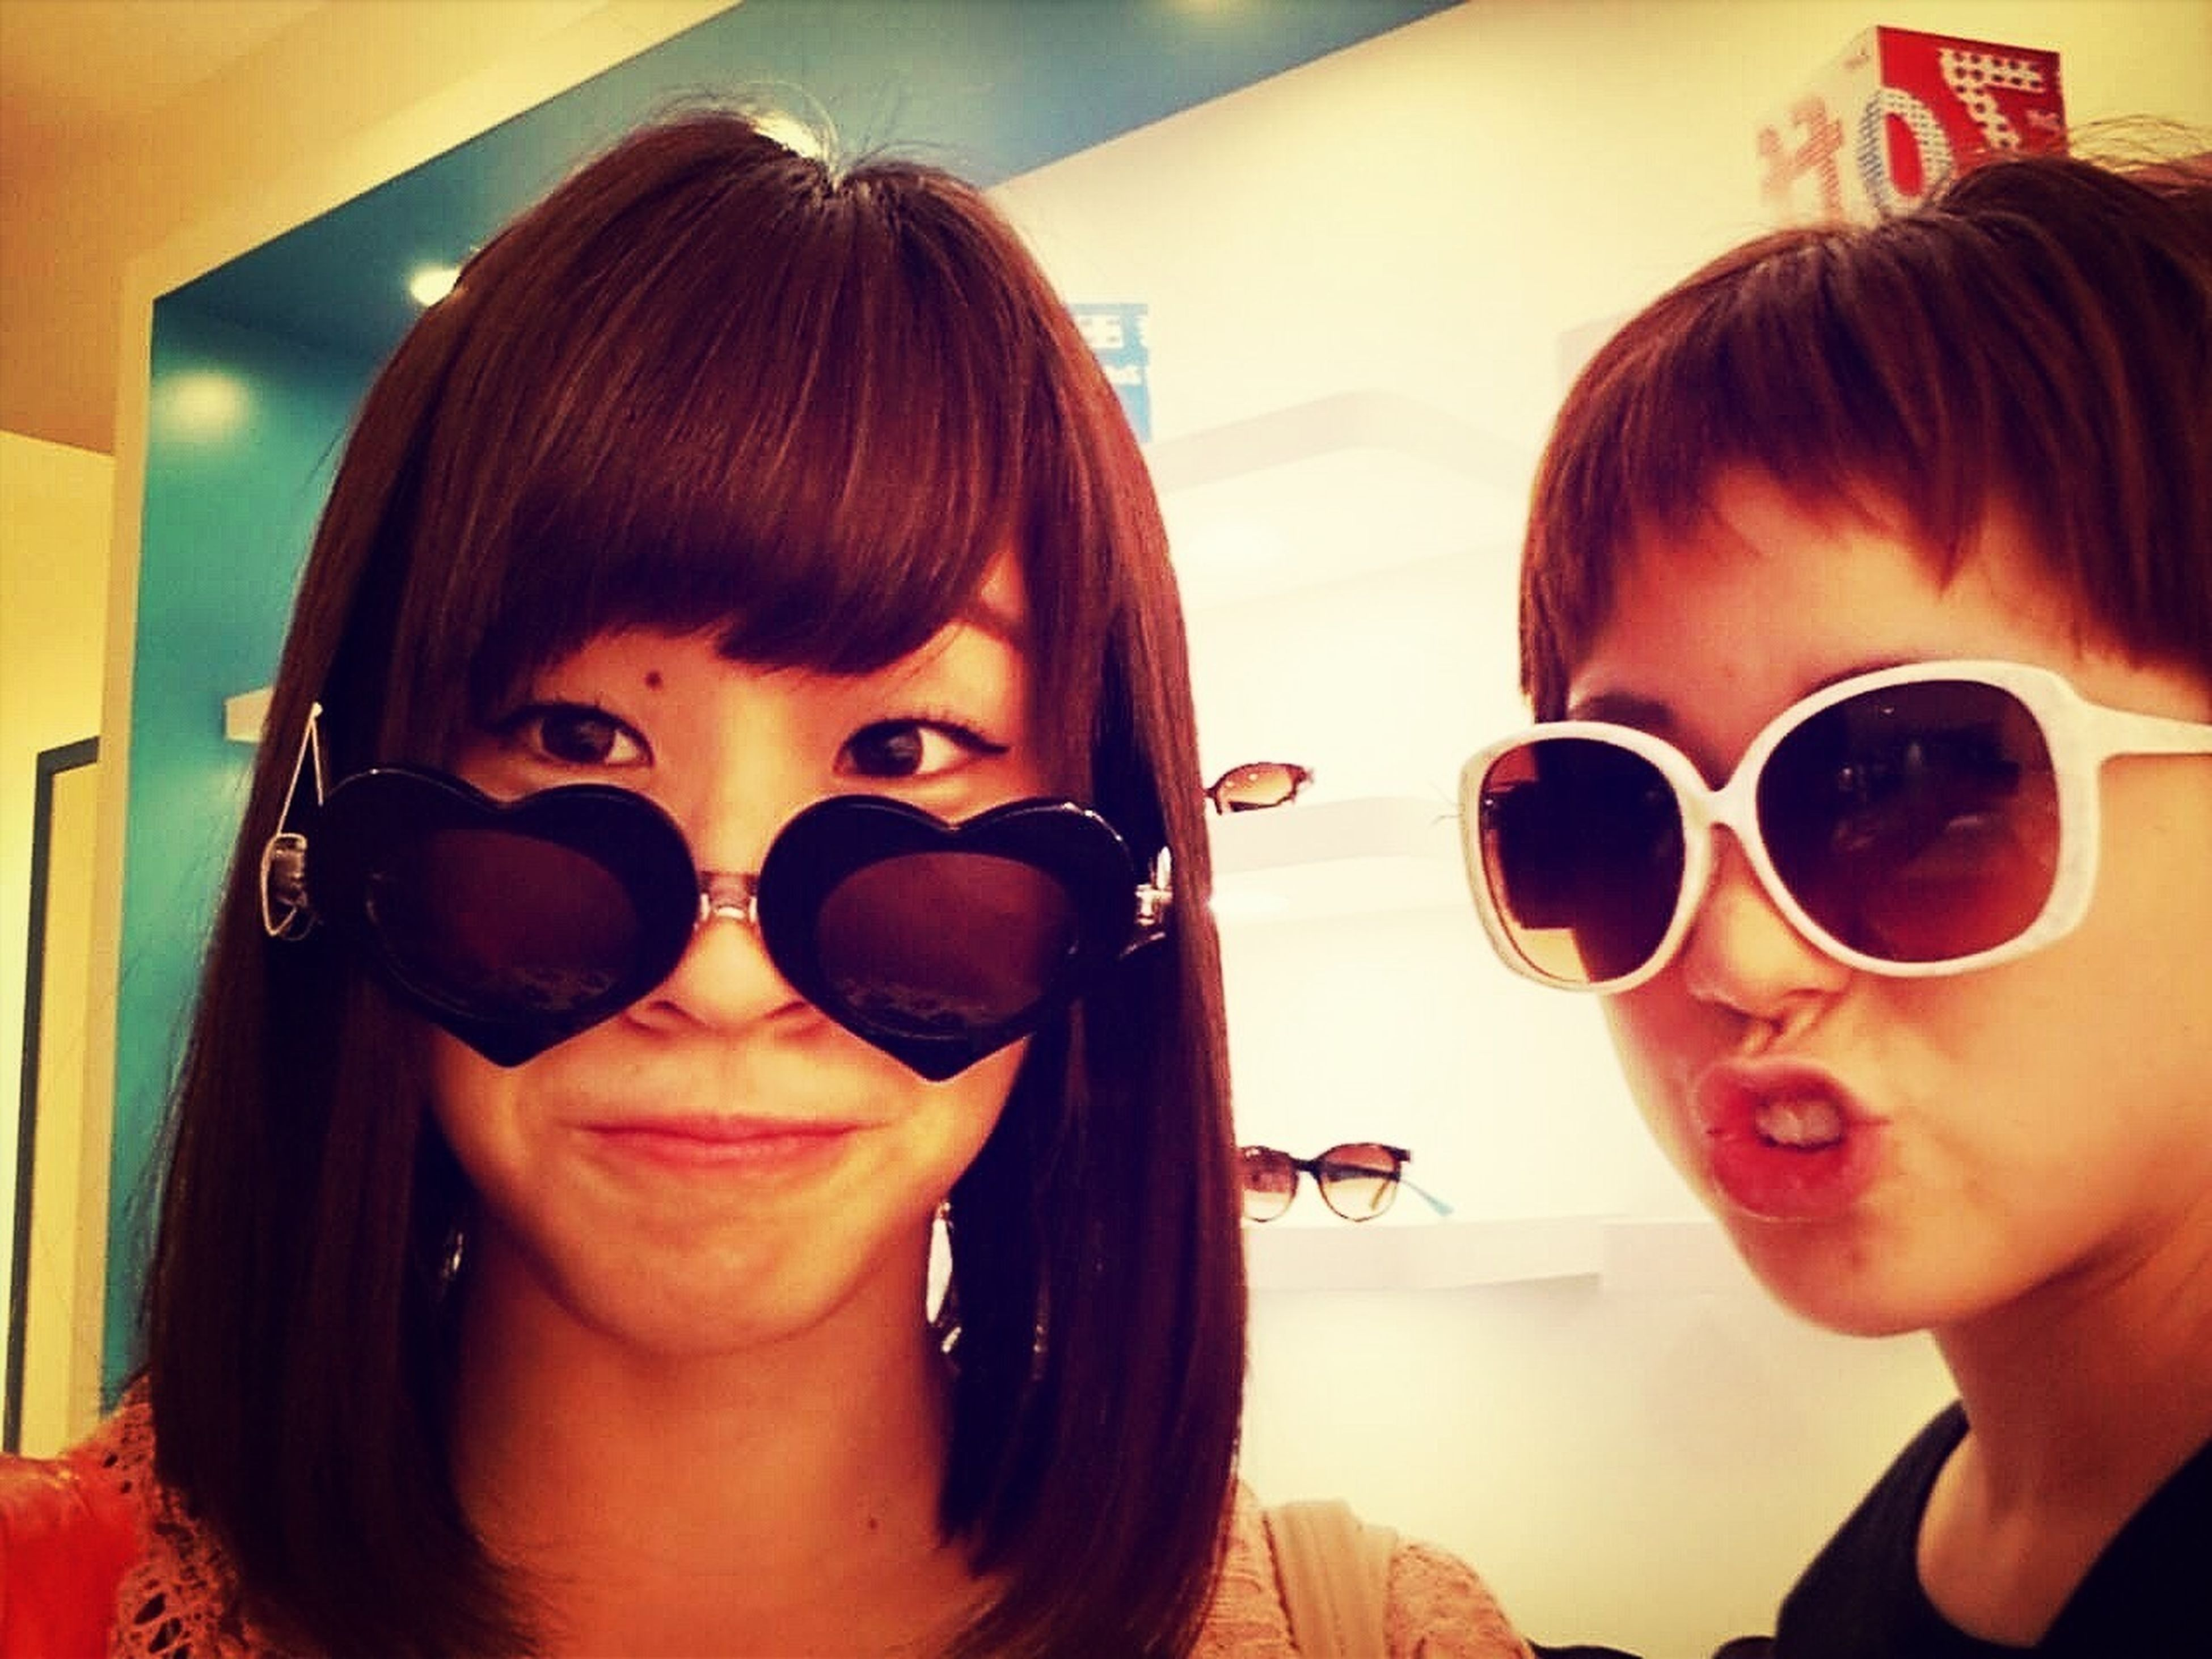 person, young adult, headshot, lifestyles, leisure activity, sunglasses, portrait, young women, looking at camera, head and shoulders, close-up, front view, indoors, smiling, car, transportation